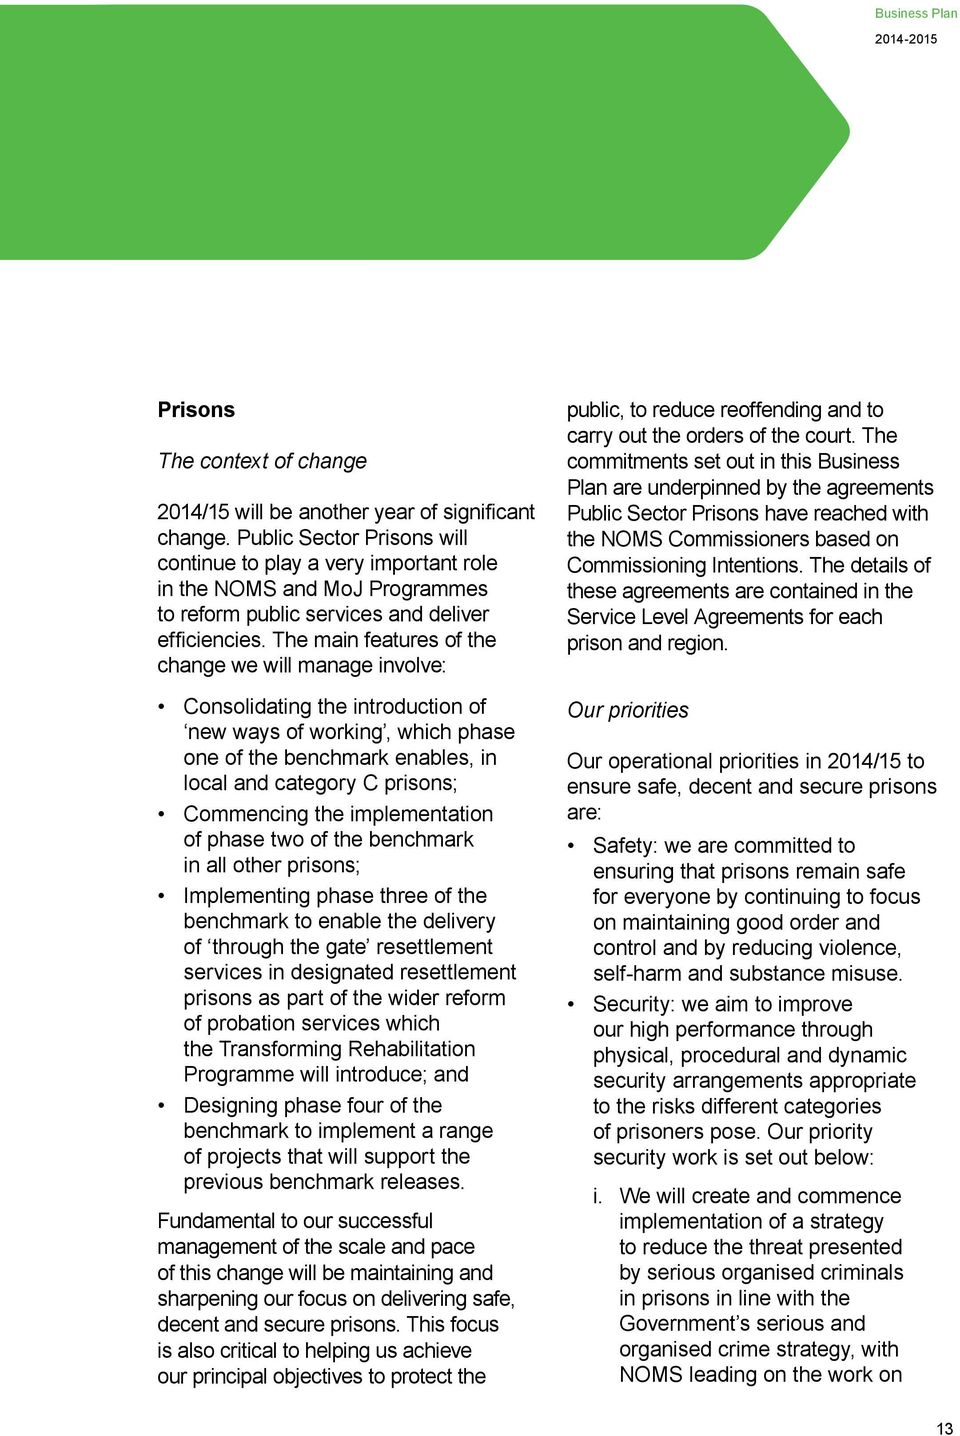 The main features of the change we will manage involve: Consolidating the introduction of new ways of working, which phase one of the benchmark enables, in local and category C prisons; Commencing